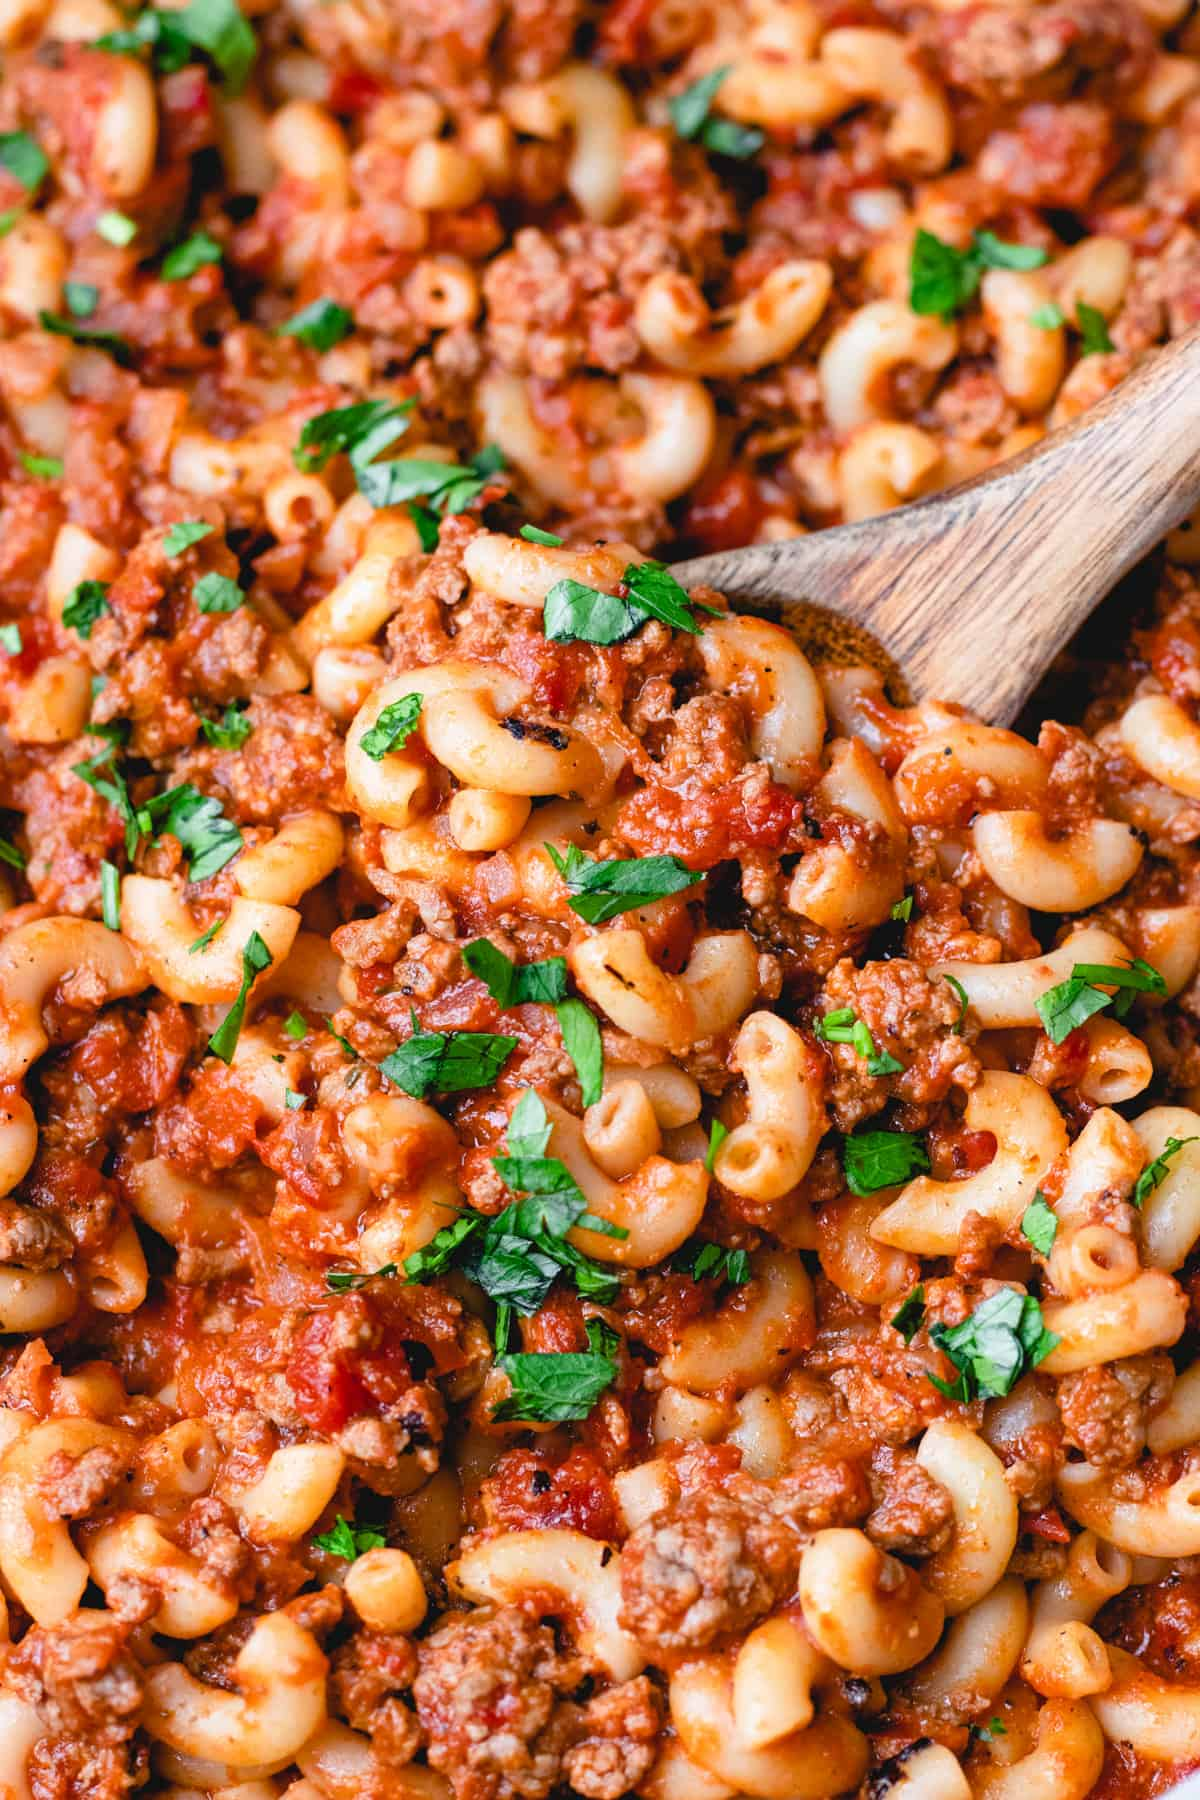 Old Fasioned American Goulash, made with round beef, tomato sauce, and elbow macaroni, topped with chopped parsley.